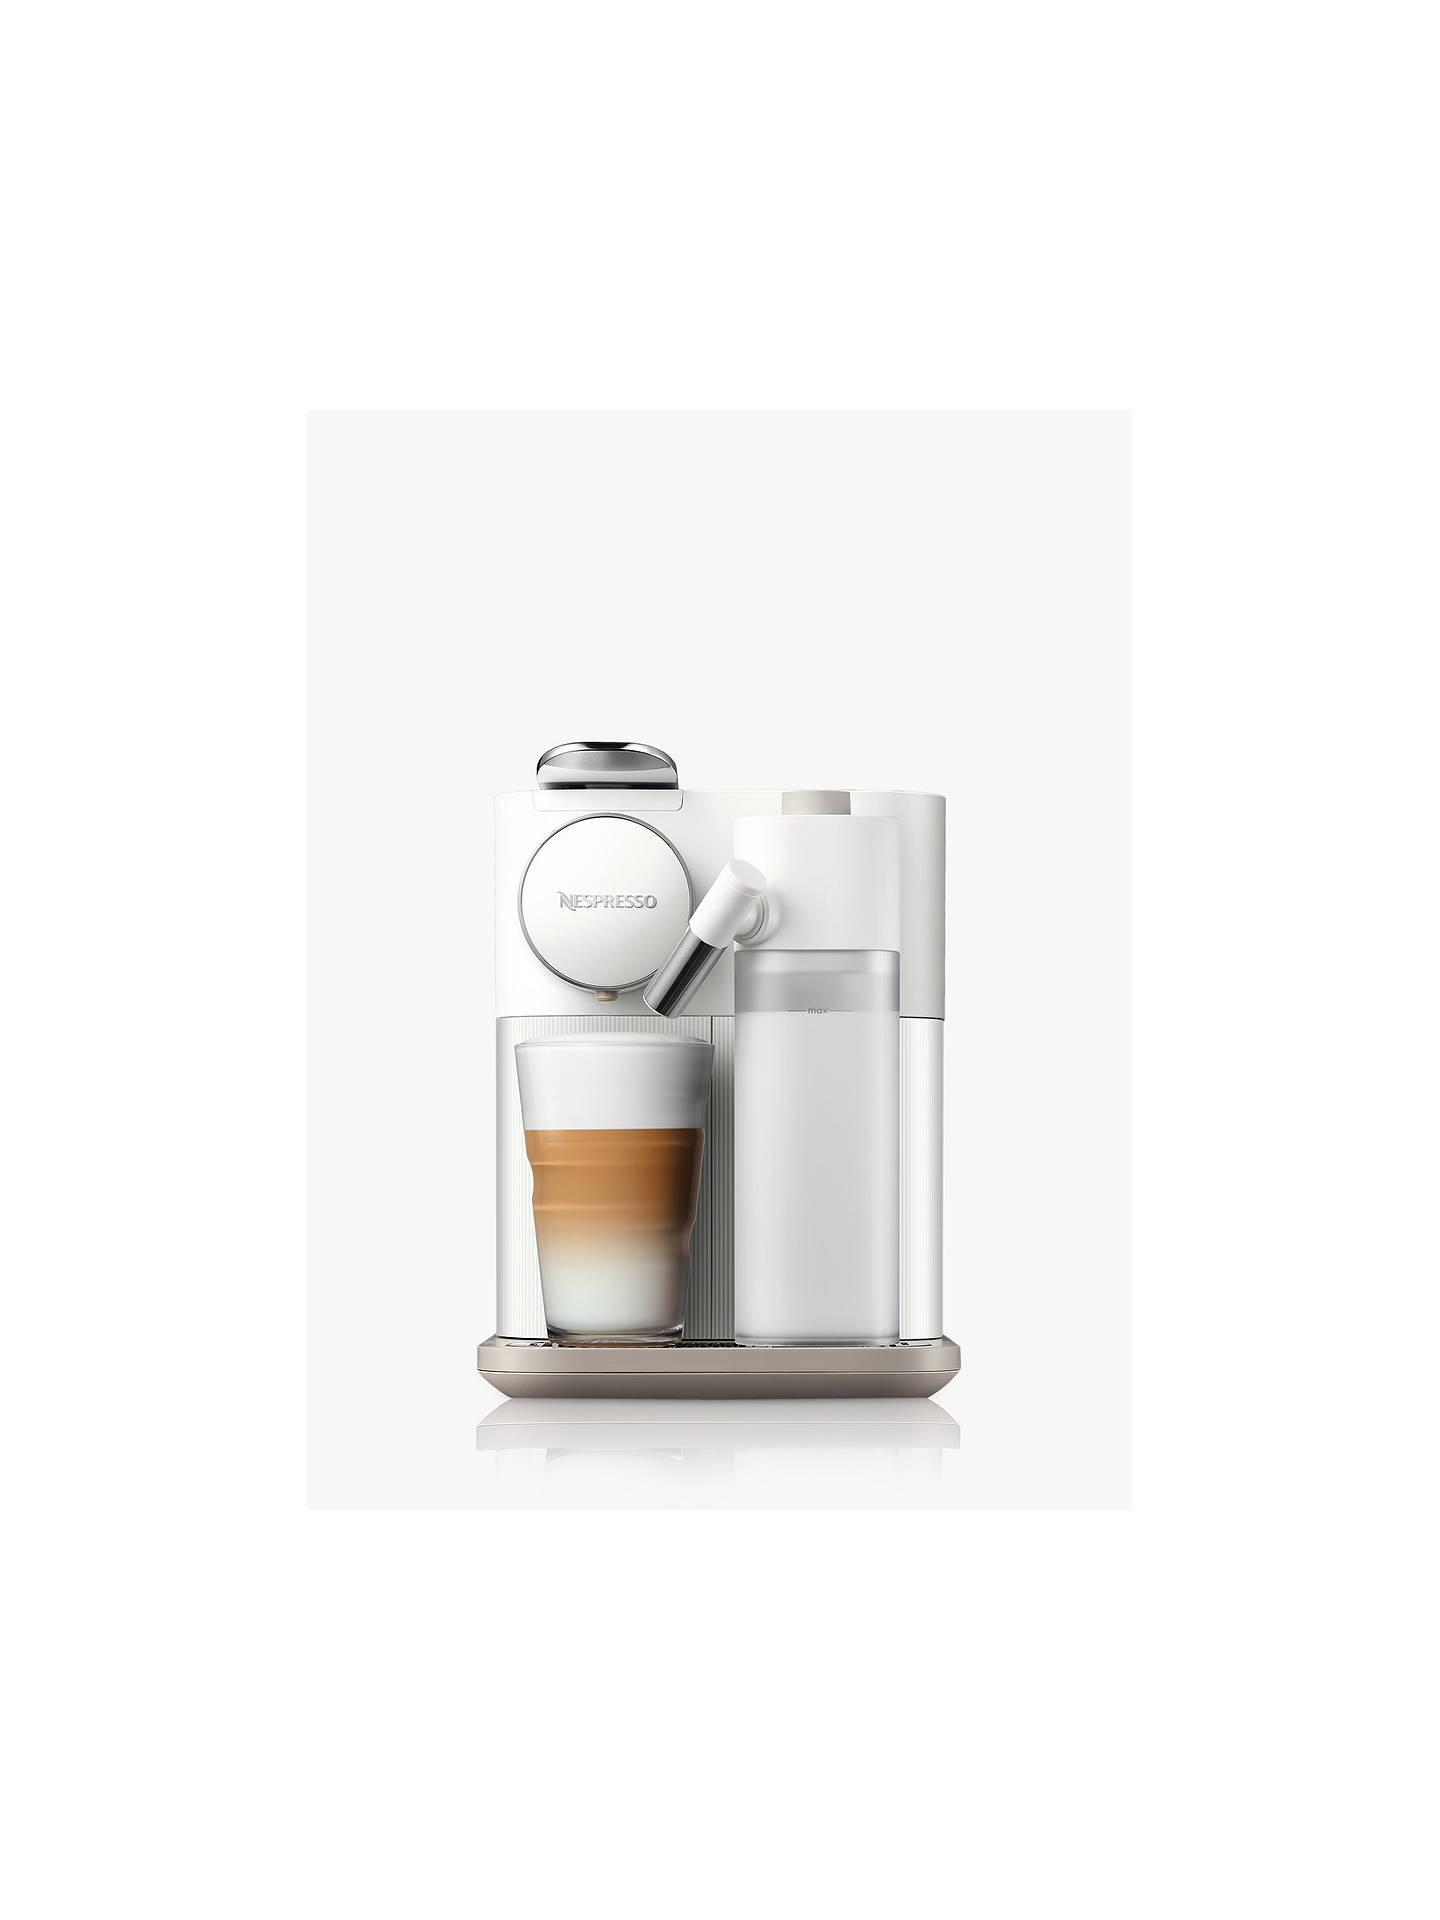 Buy Nespresso EN650 Gran Lattissima Capsule Coffee Machine by De'Longhi, White Online at johnlewis.com